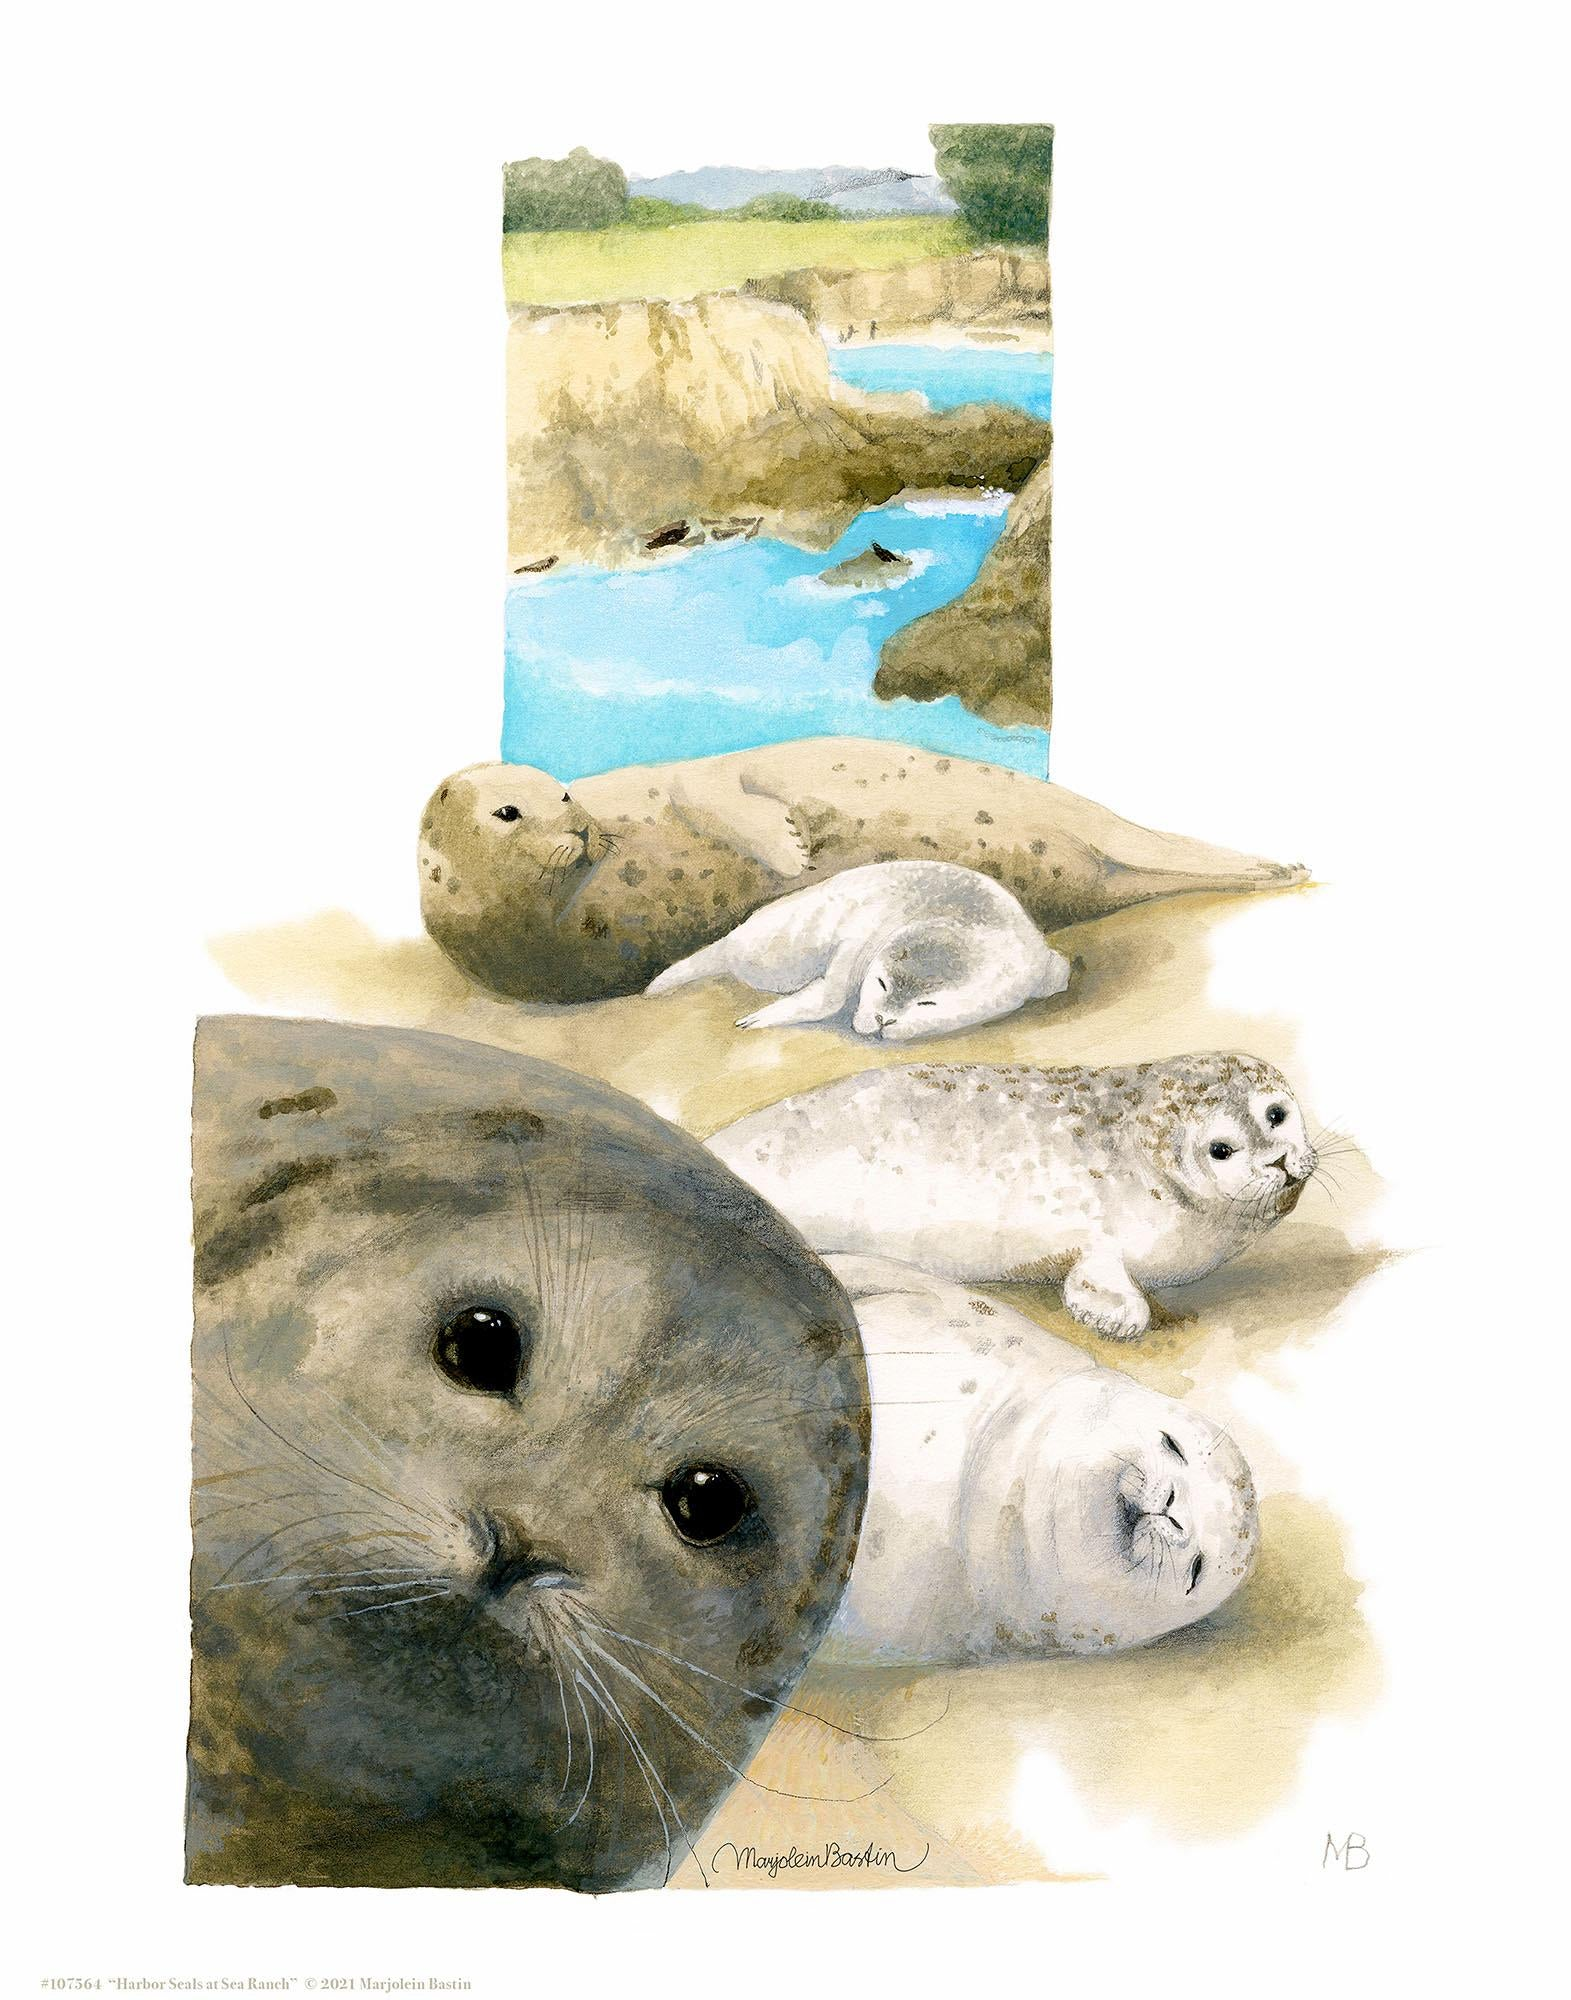 Harbor Seals at Sea Ranch Art Collection